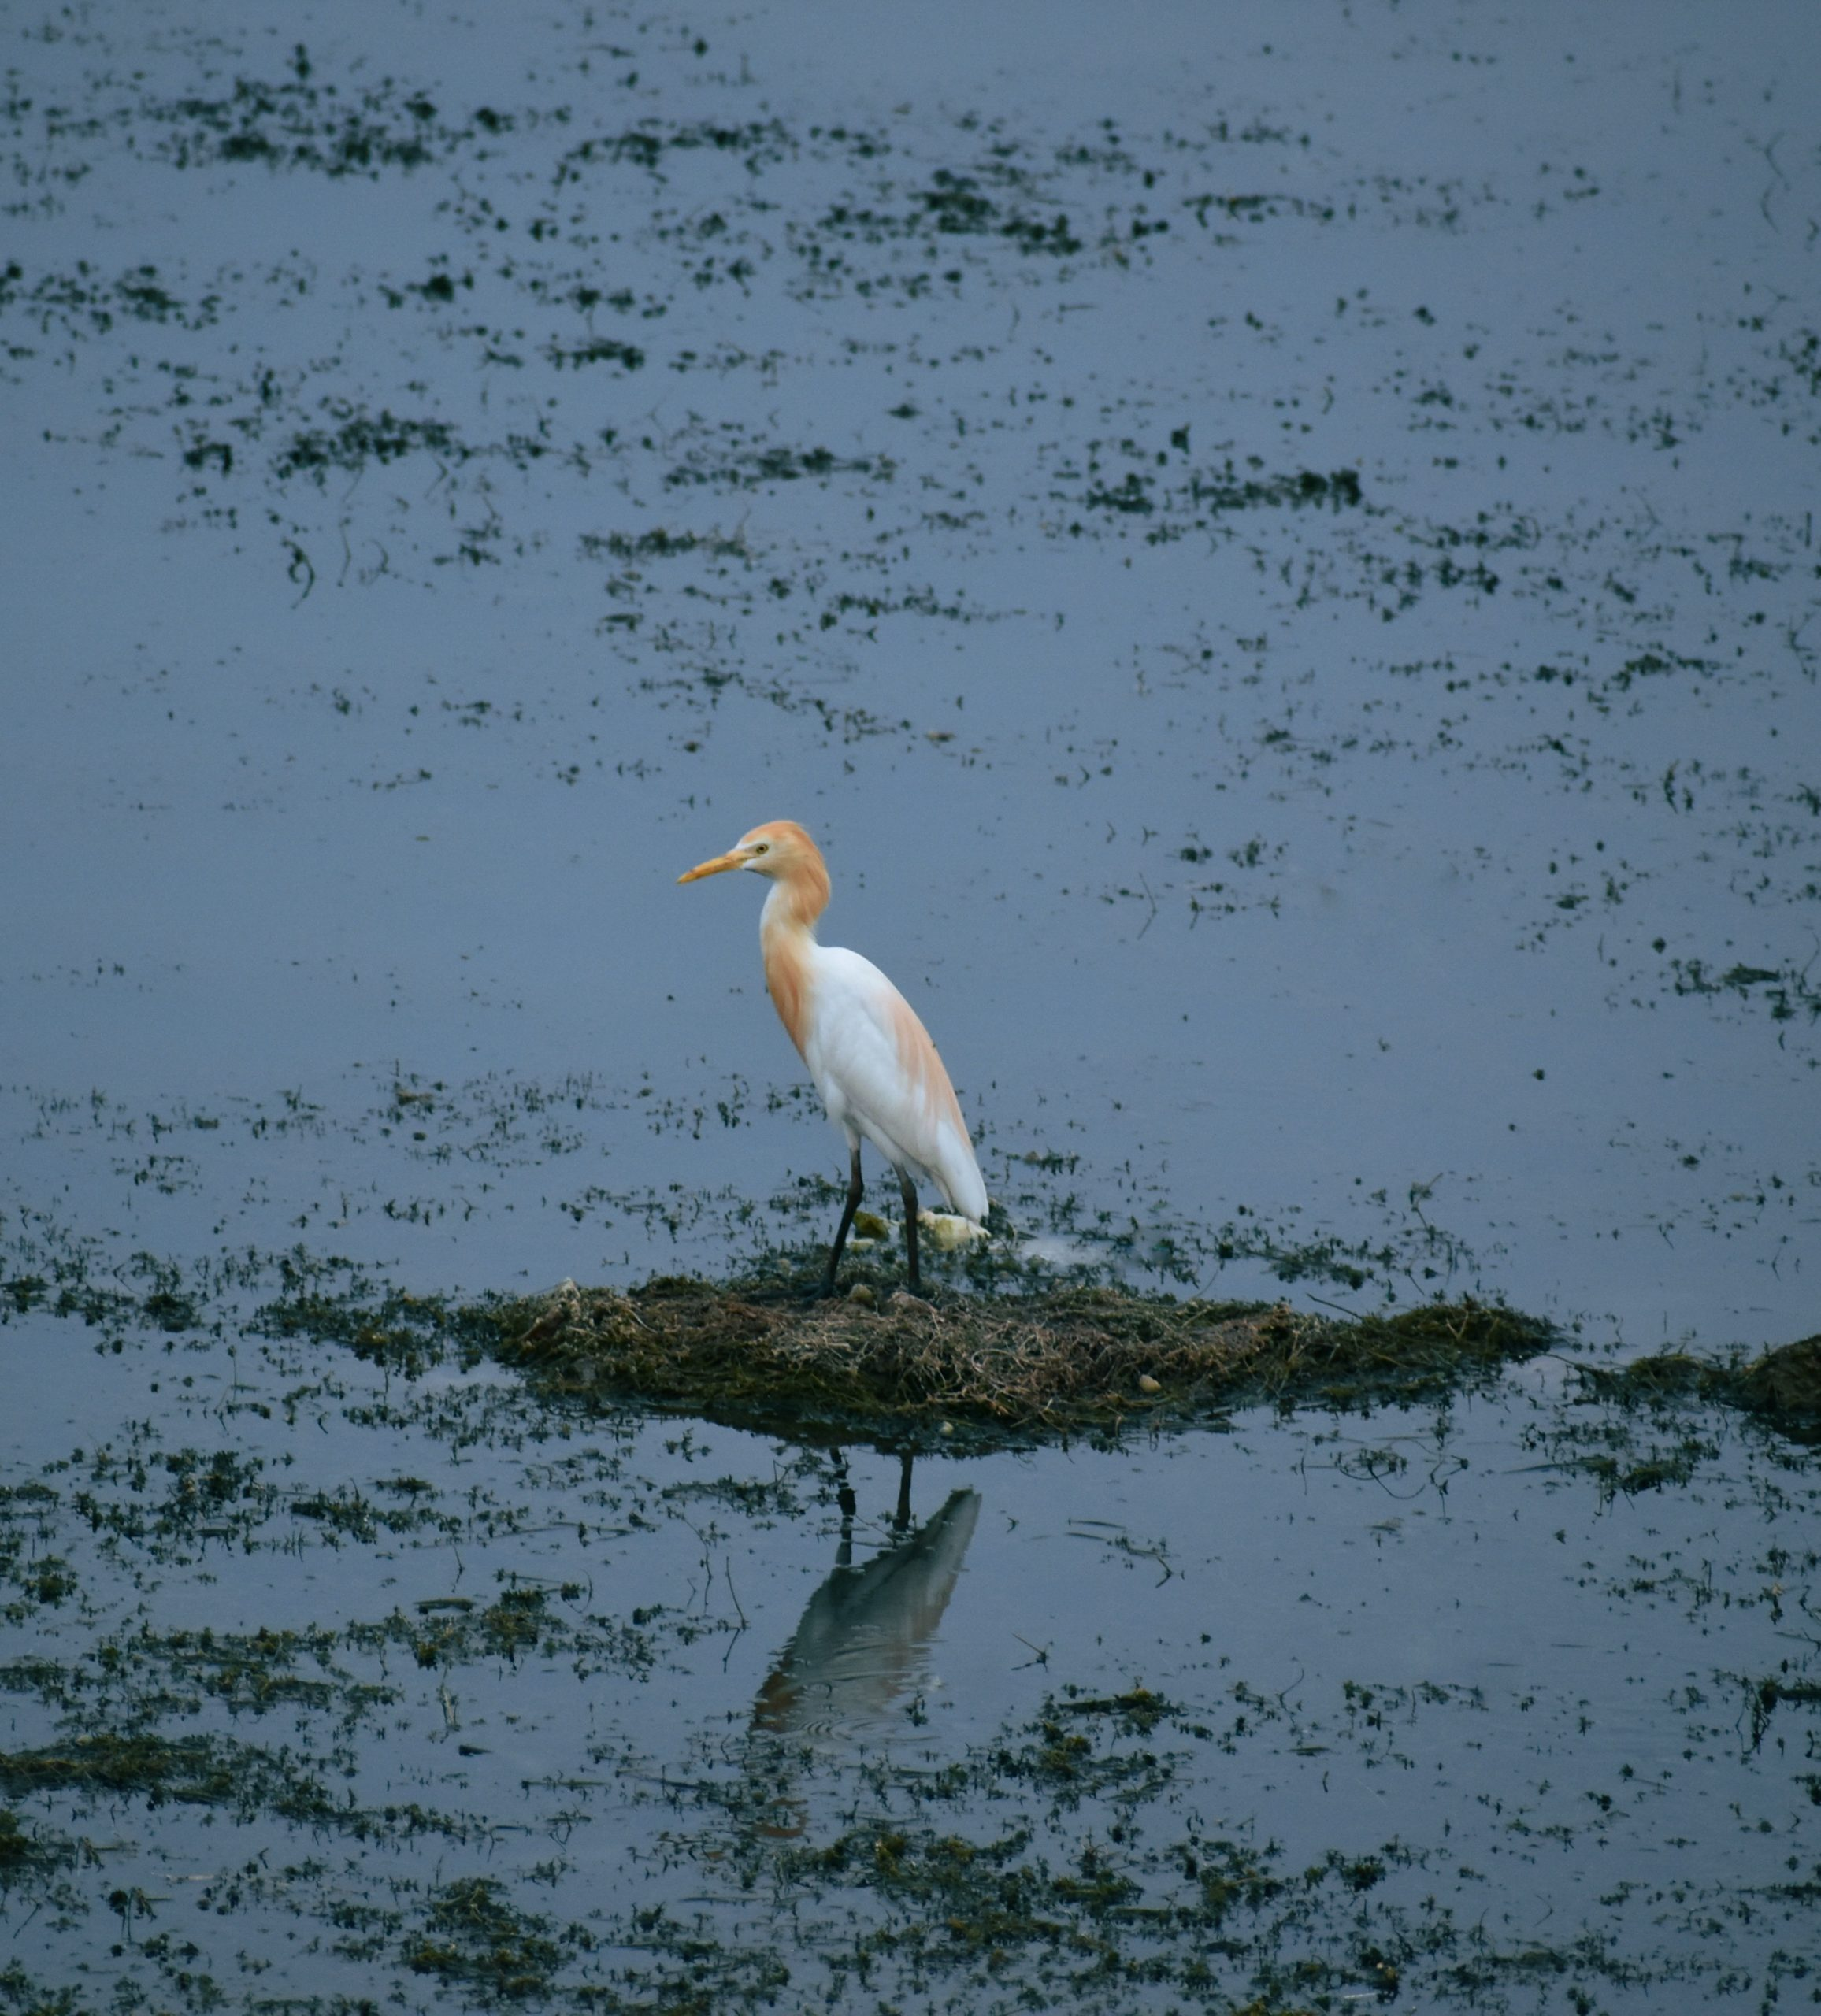 A cattle egret in a pond